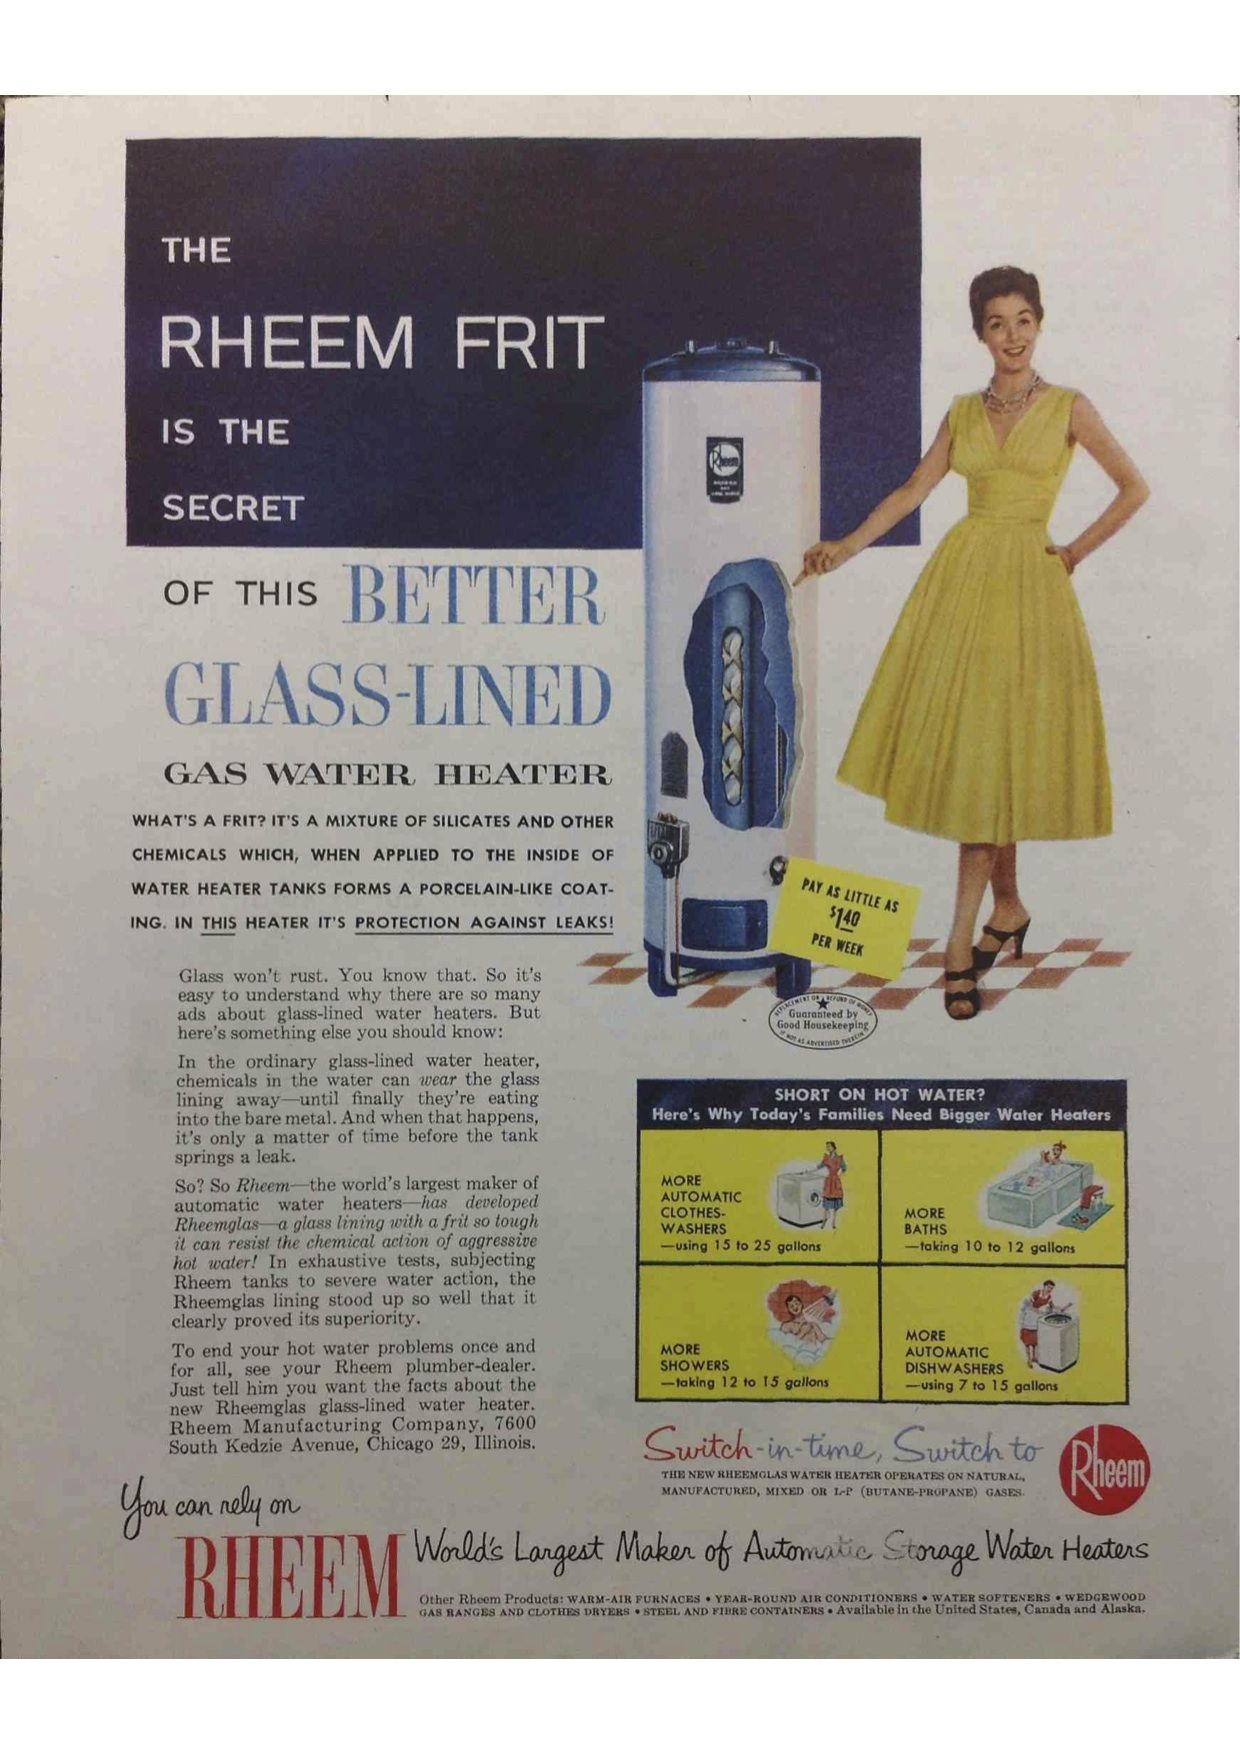 1955 Rheem Gas Water Heater The Rheem Frit Enough Water To Do Laundry Bathe And Do The Dishes Gas Water Heater Water Heater Heater